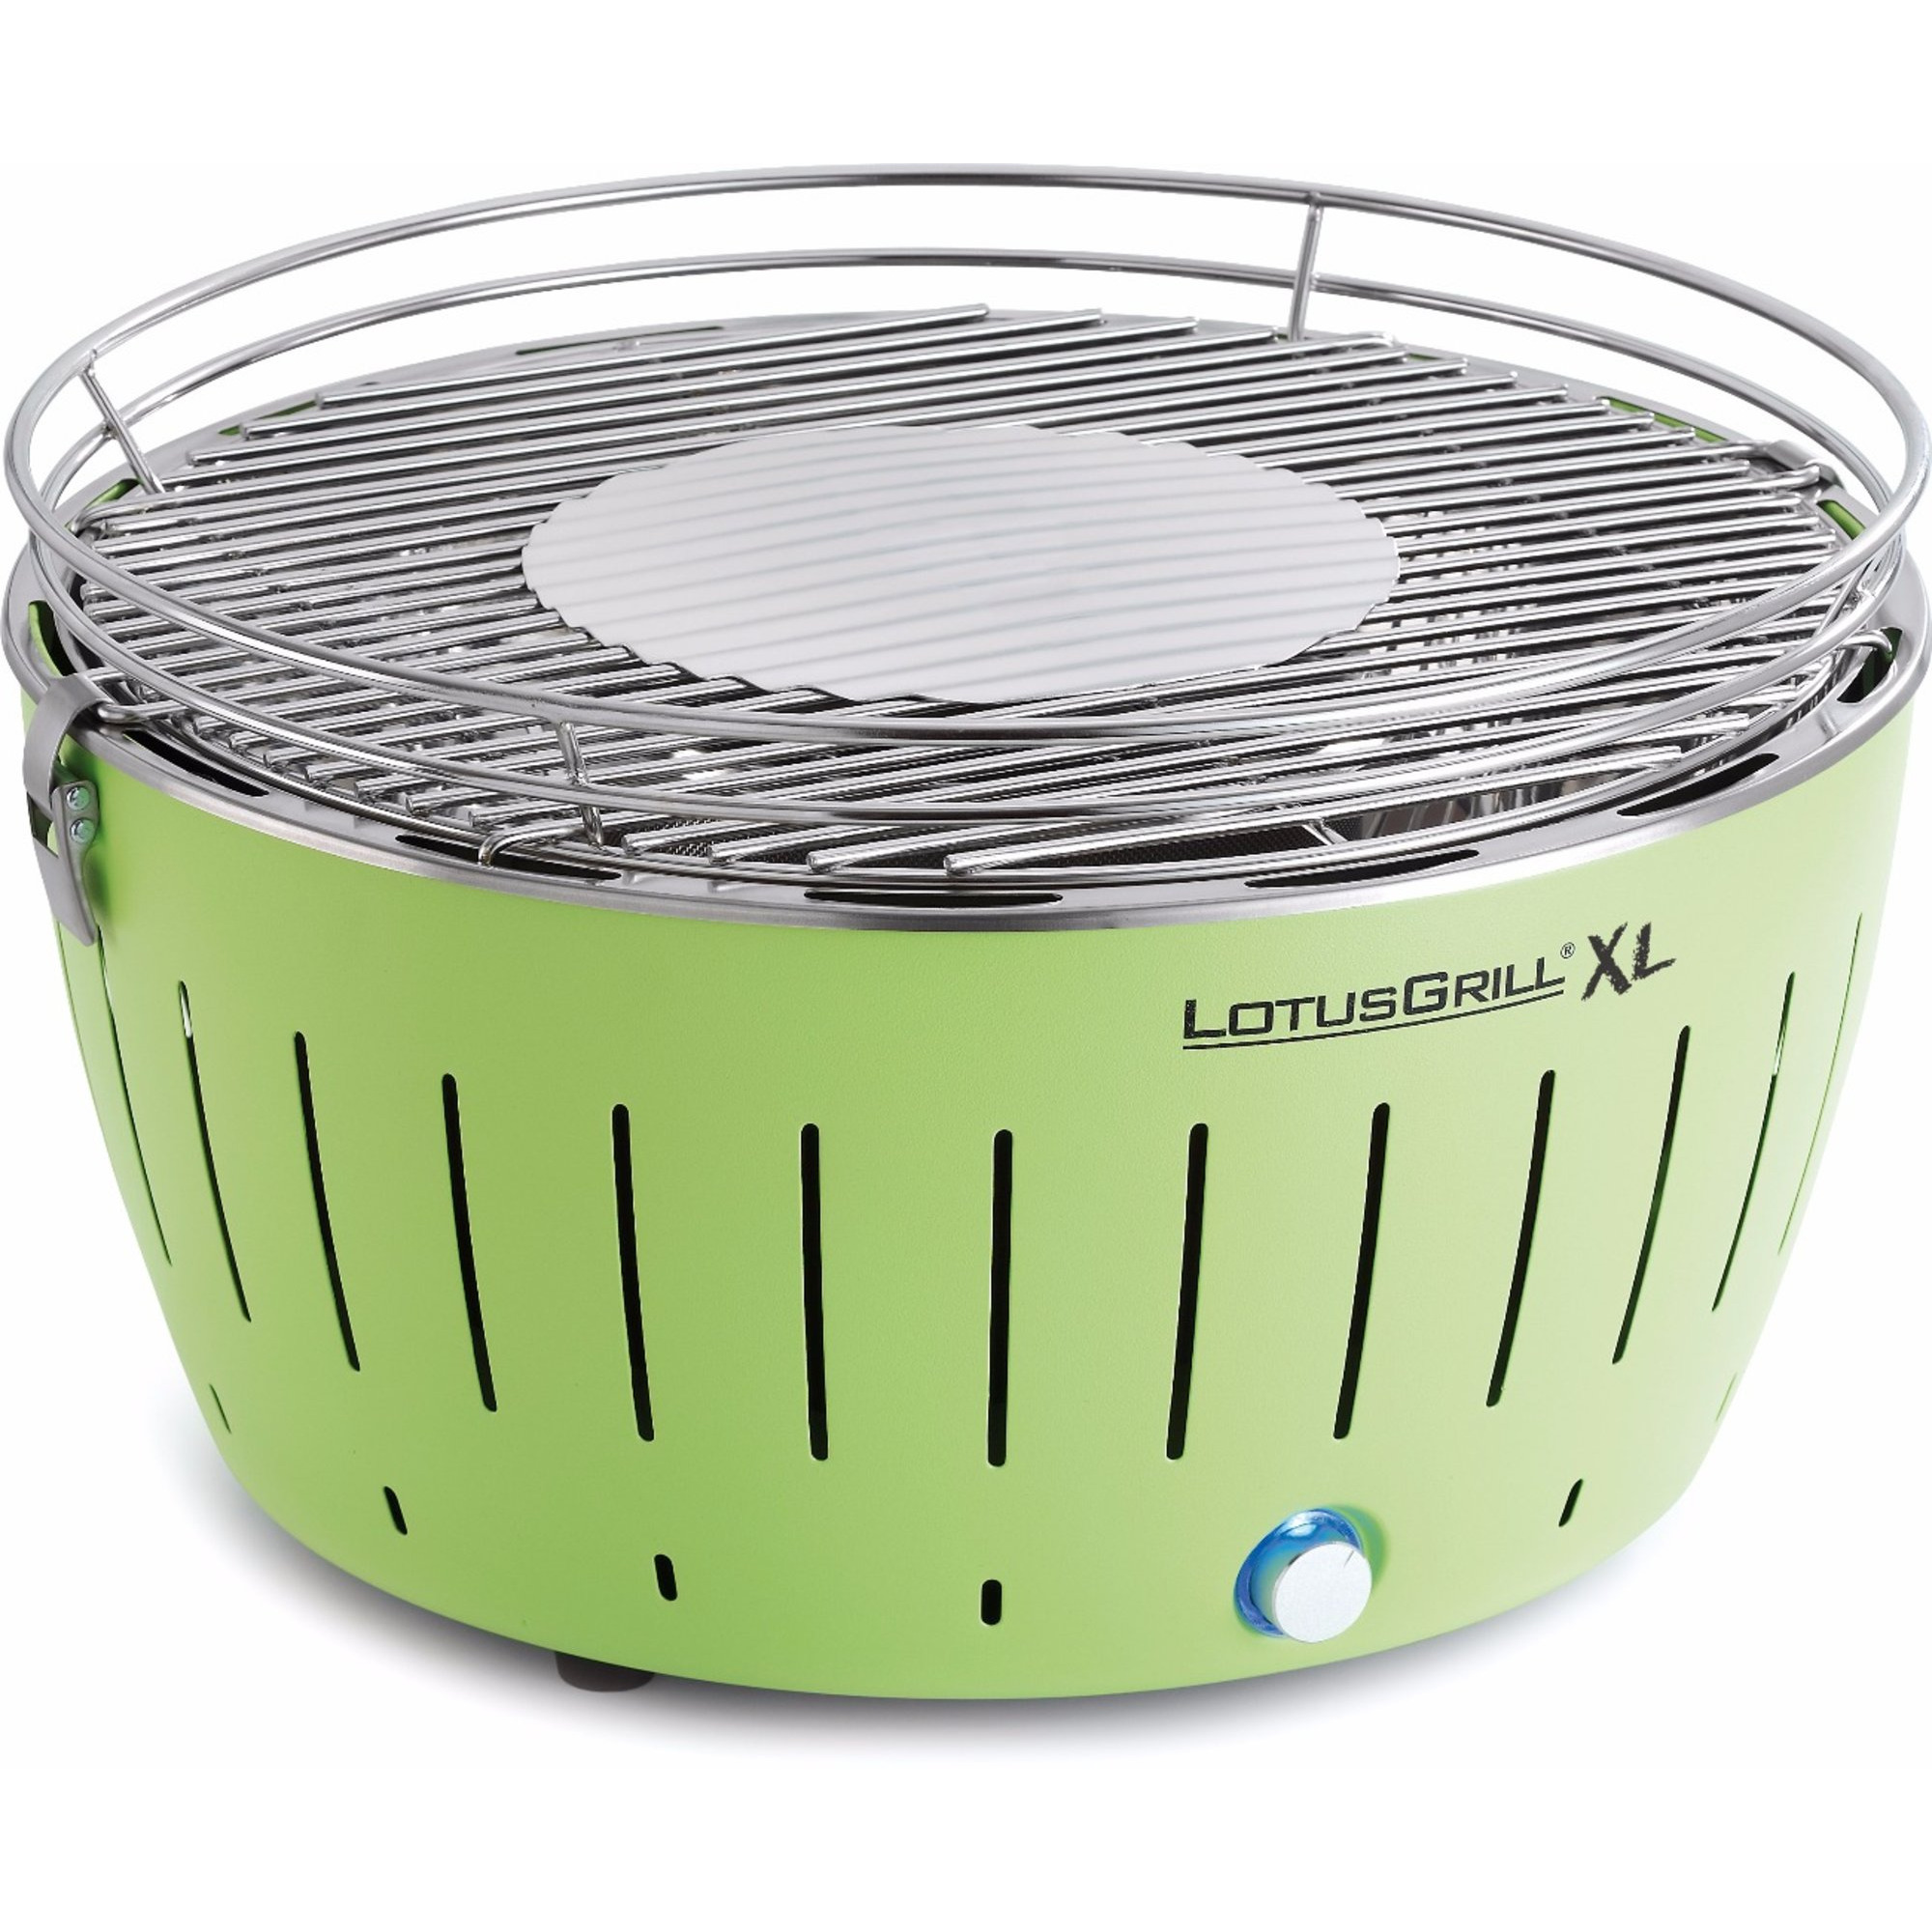 LotusGrill XL Rökfri kolgrill Grön